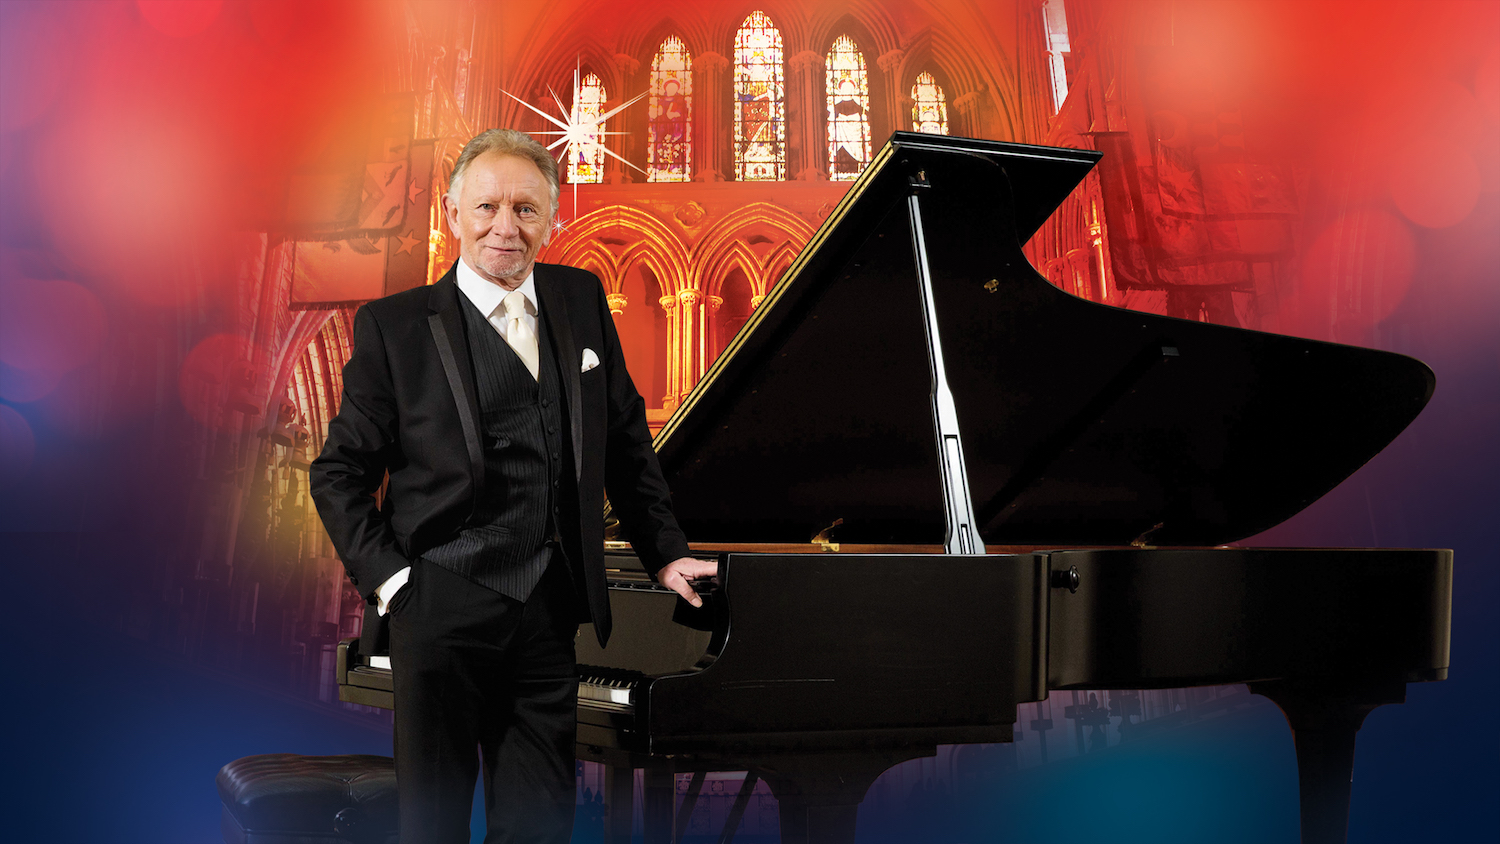 Phil Coulter Saint Marys Cathdral